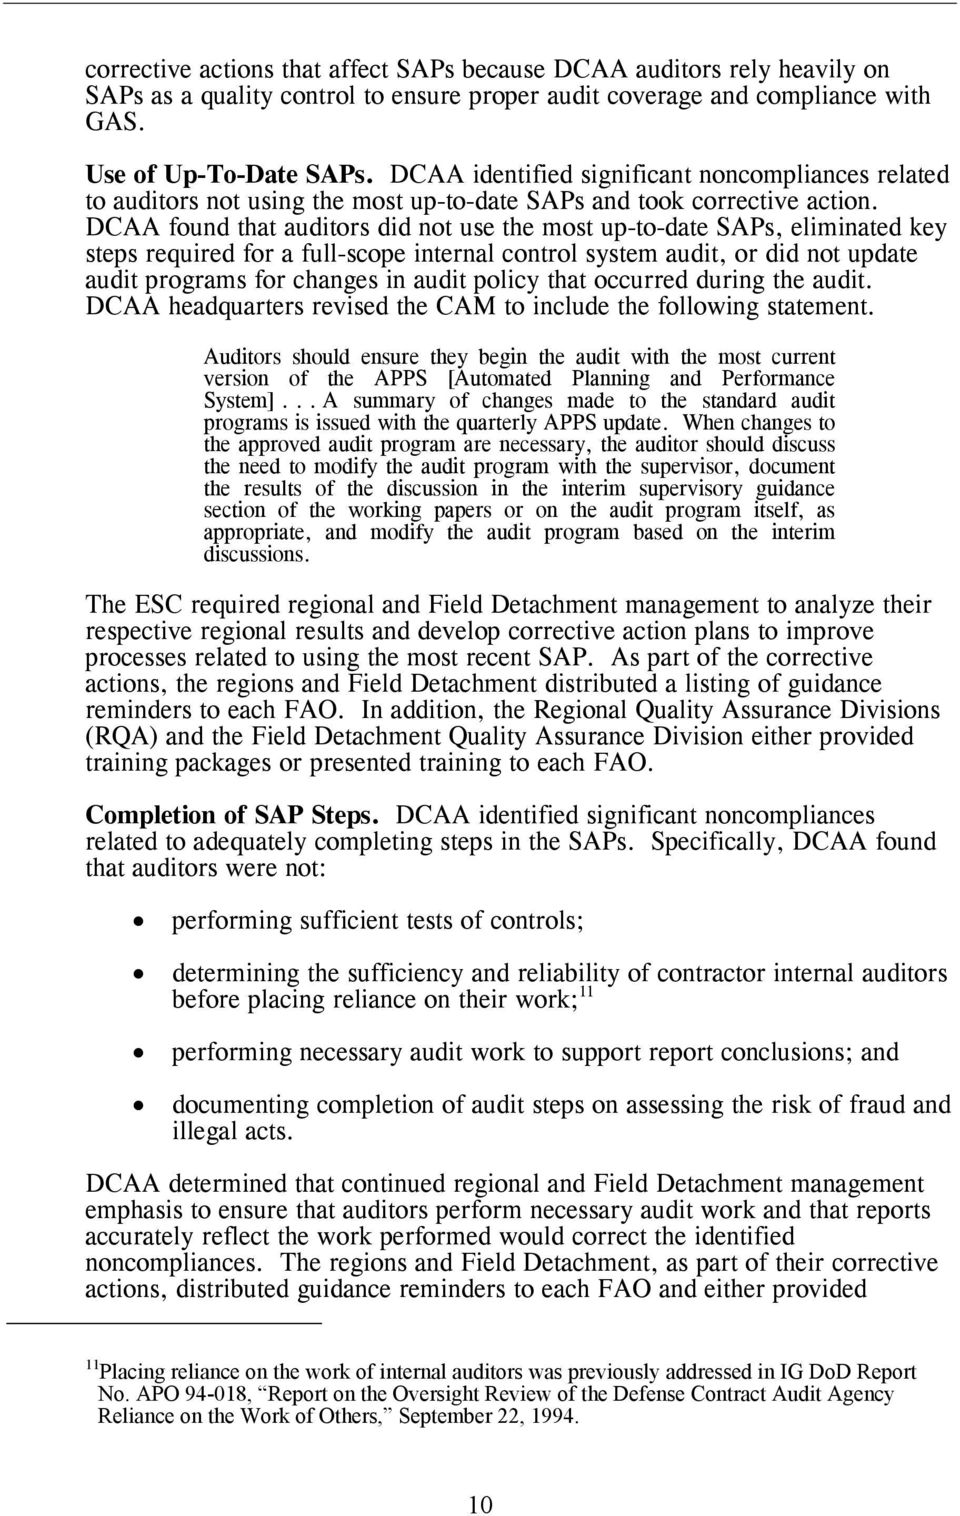 DCAA found that auditors did not use the most up-to-date SAPs, eliminated key steps required for a full-scope internal control system audit, or did not update audit programs for changes in audit